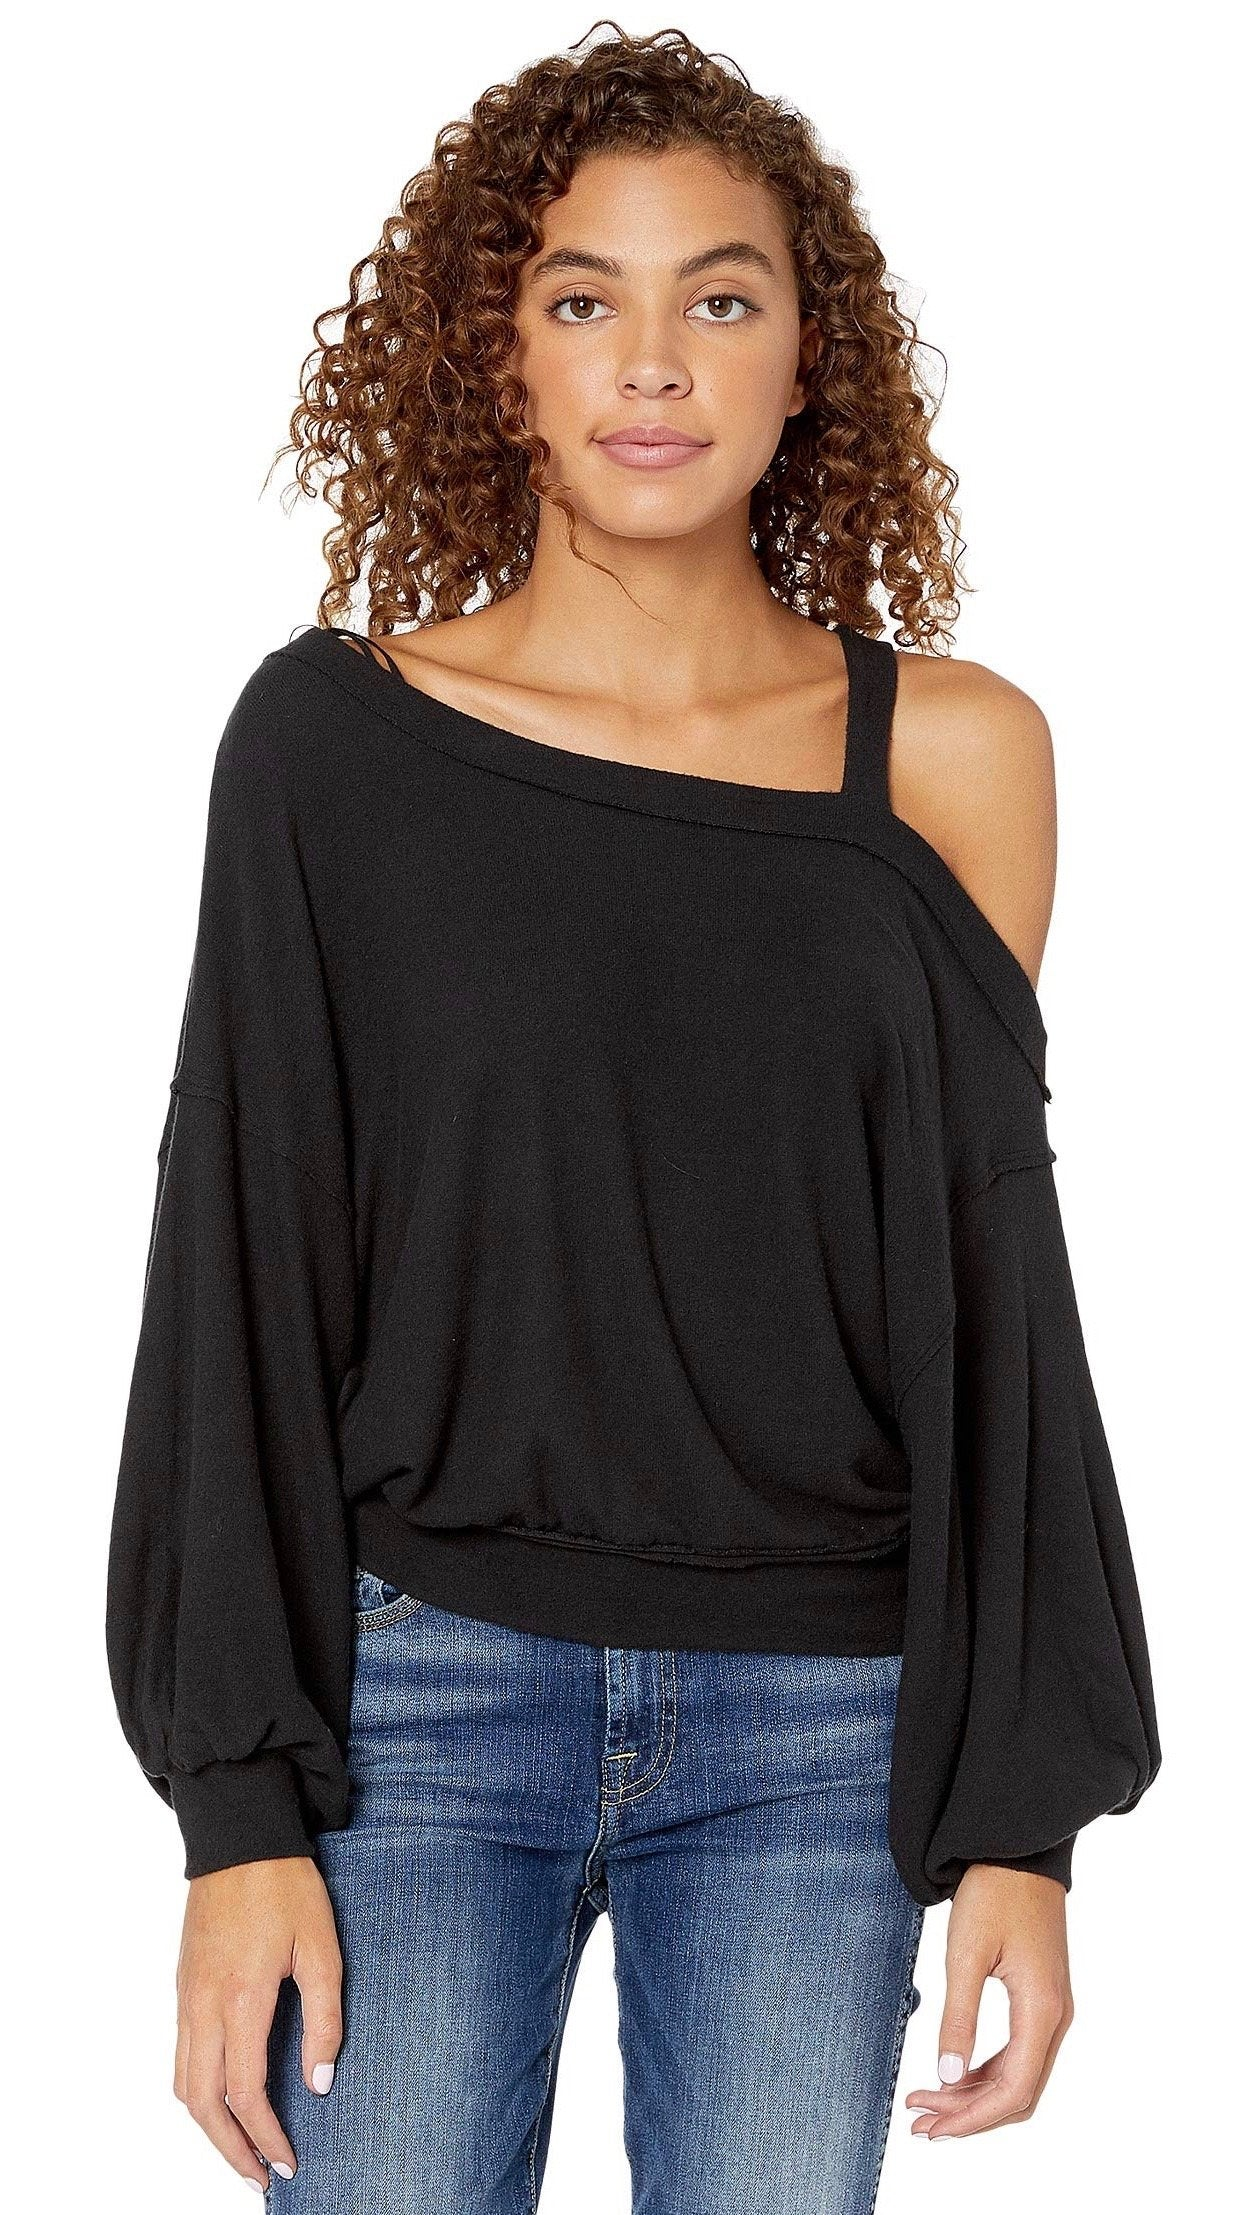 Free People Flaunt It Pullover Tee Black Dolman Long Sleeve Top I ShopAA